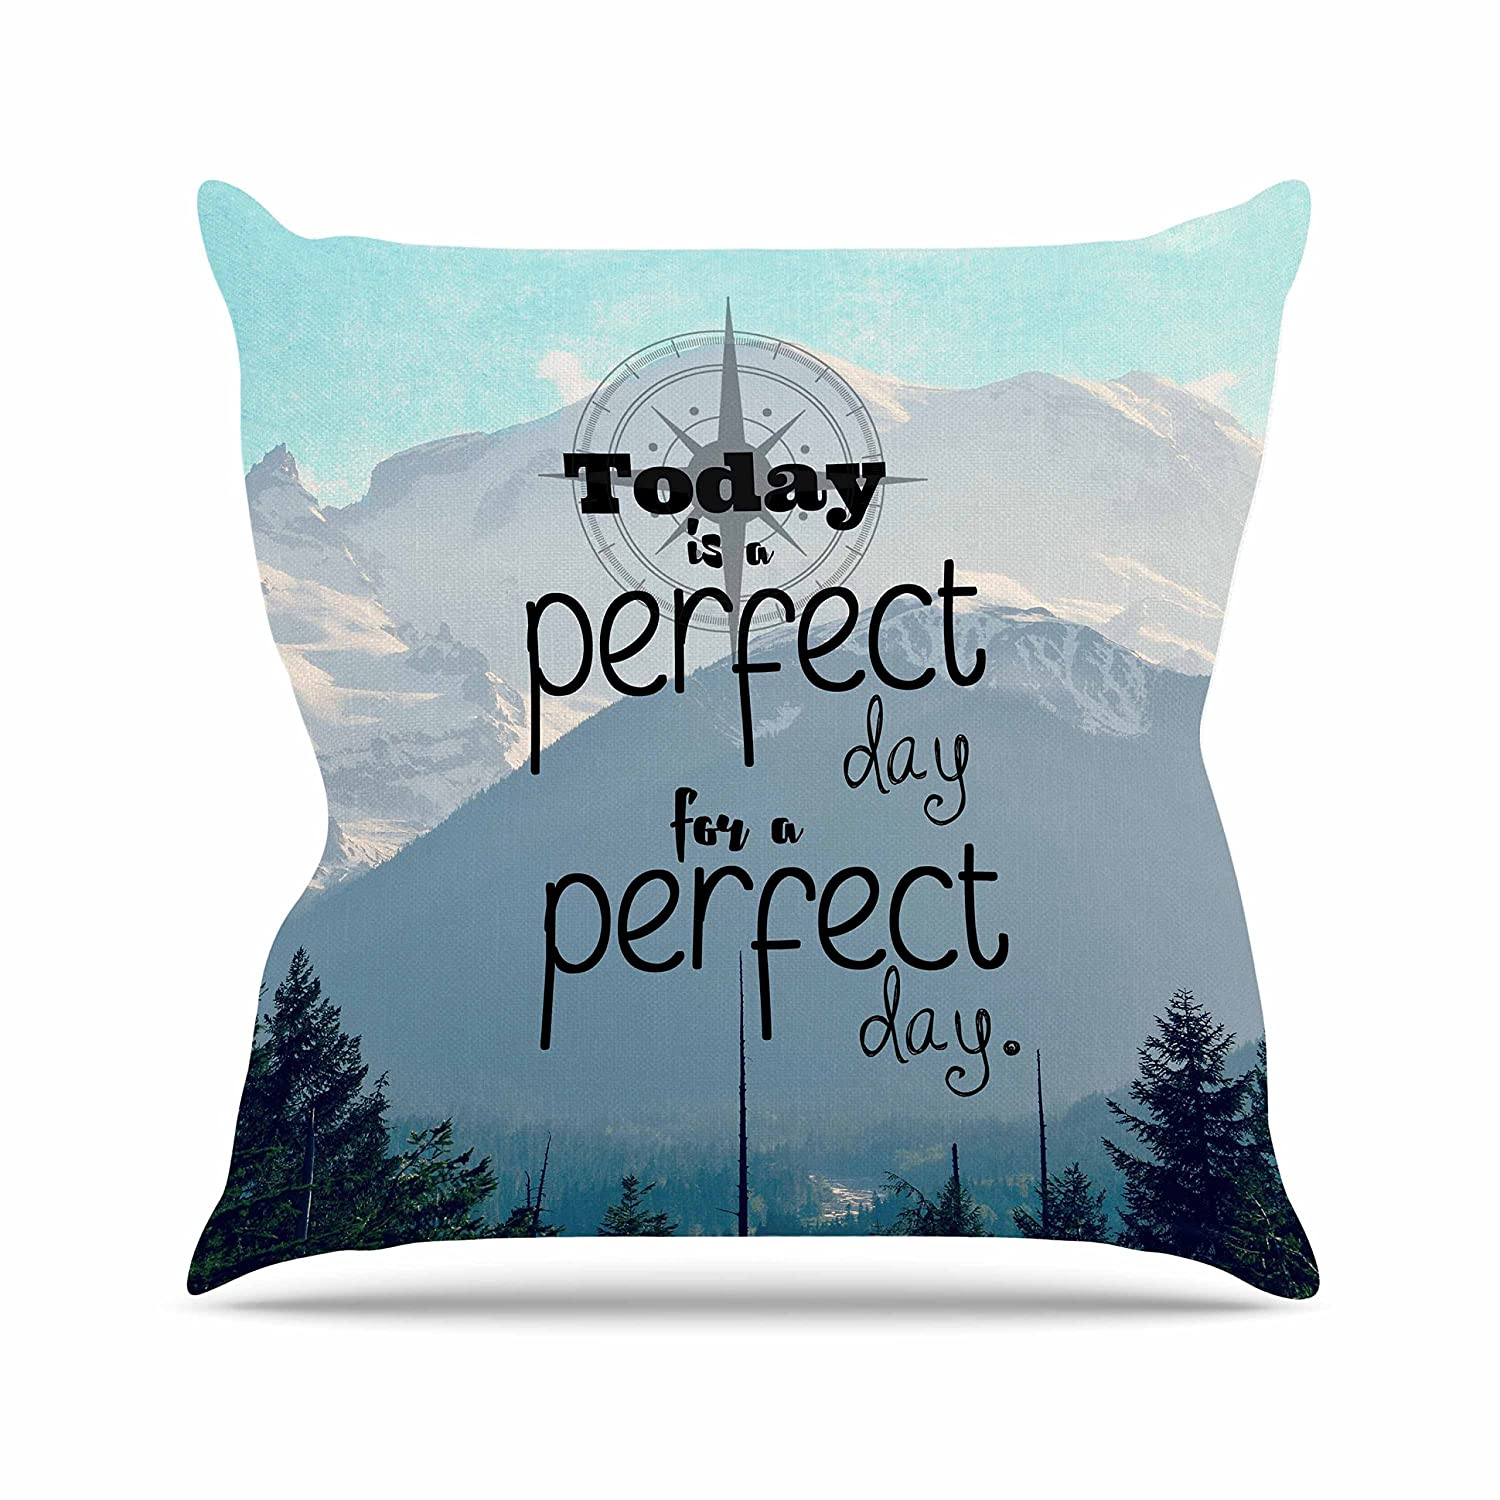 26 by 26 Kess InHouse Robin Dickinson A Perfect Day Gray Blue Throw Pillow